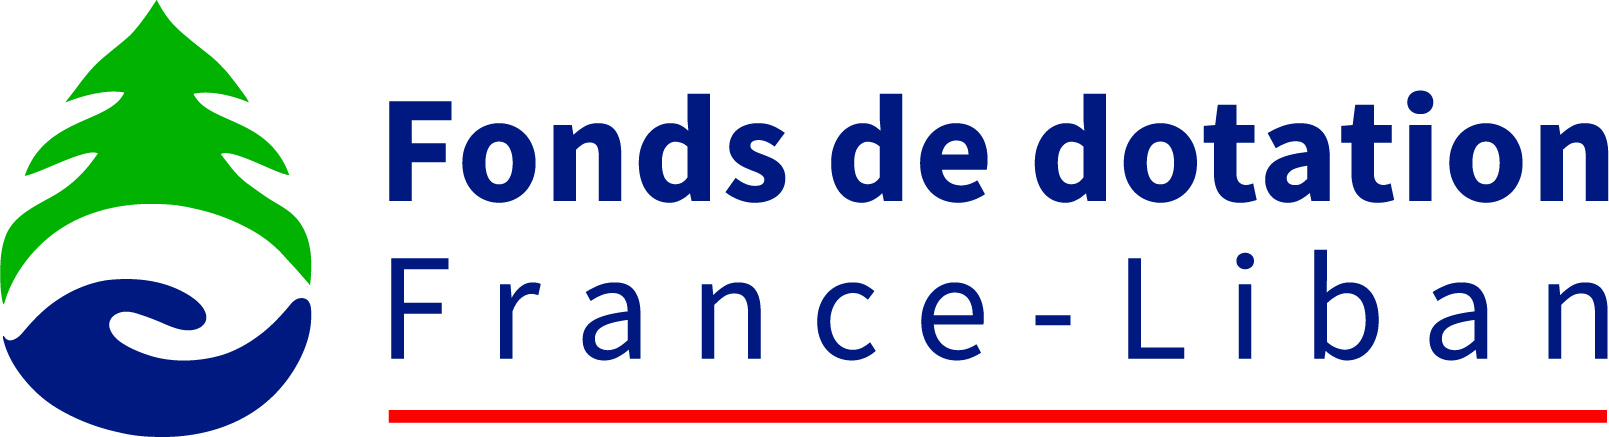 Fonds de dotation France-Liban